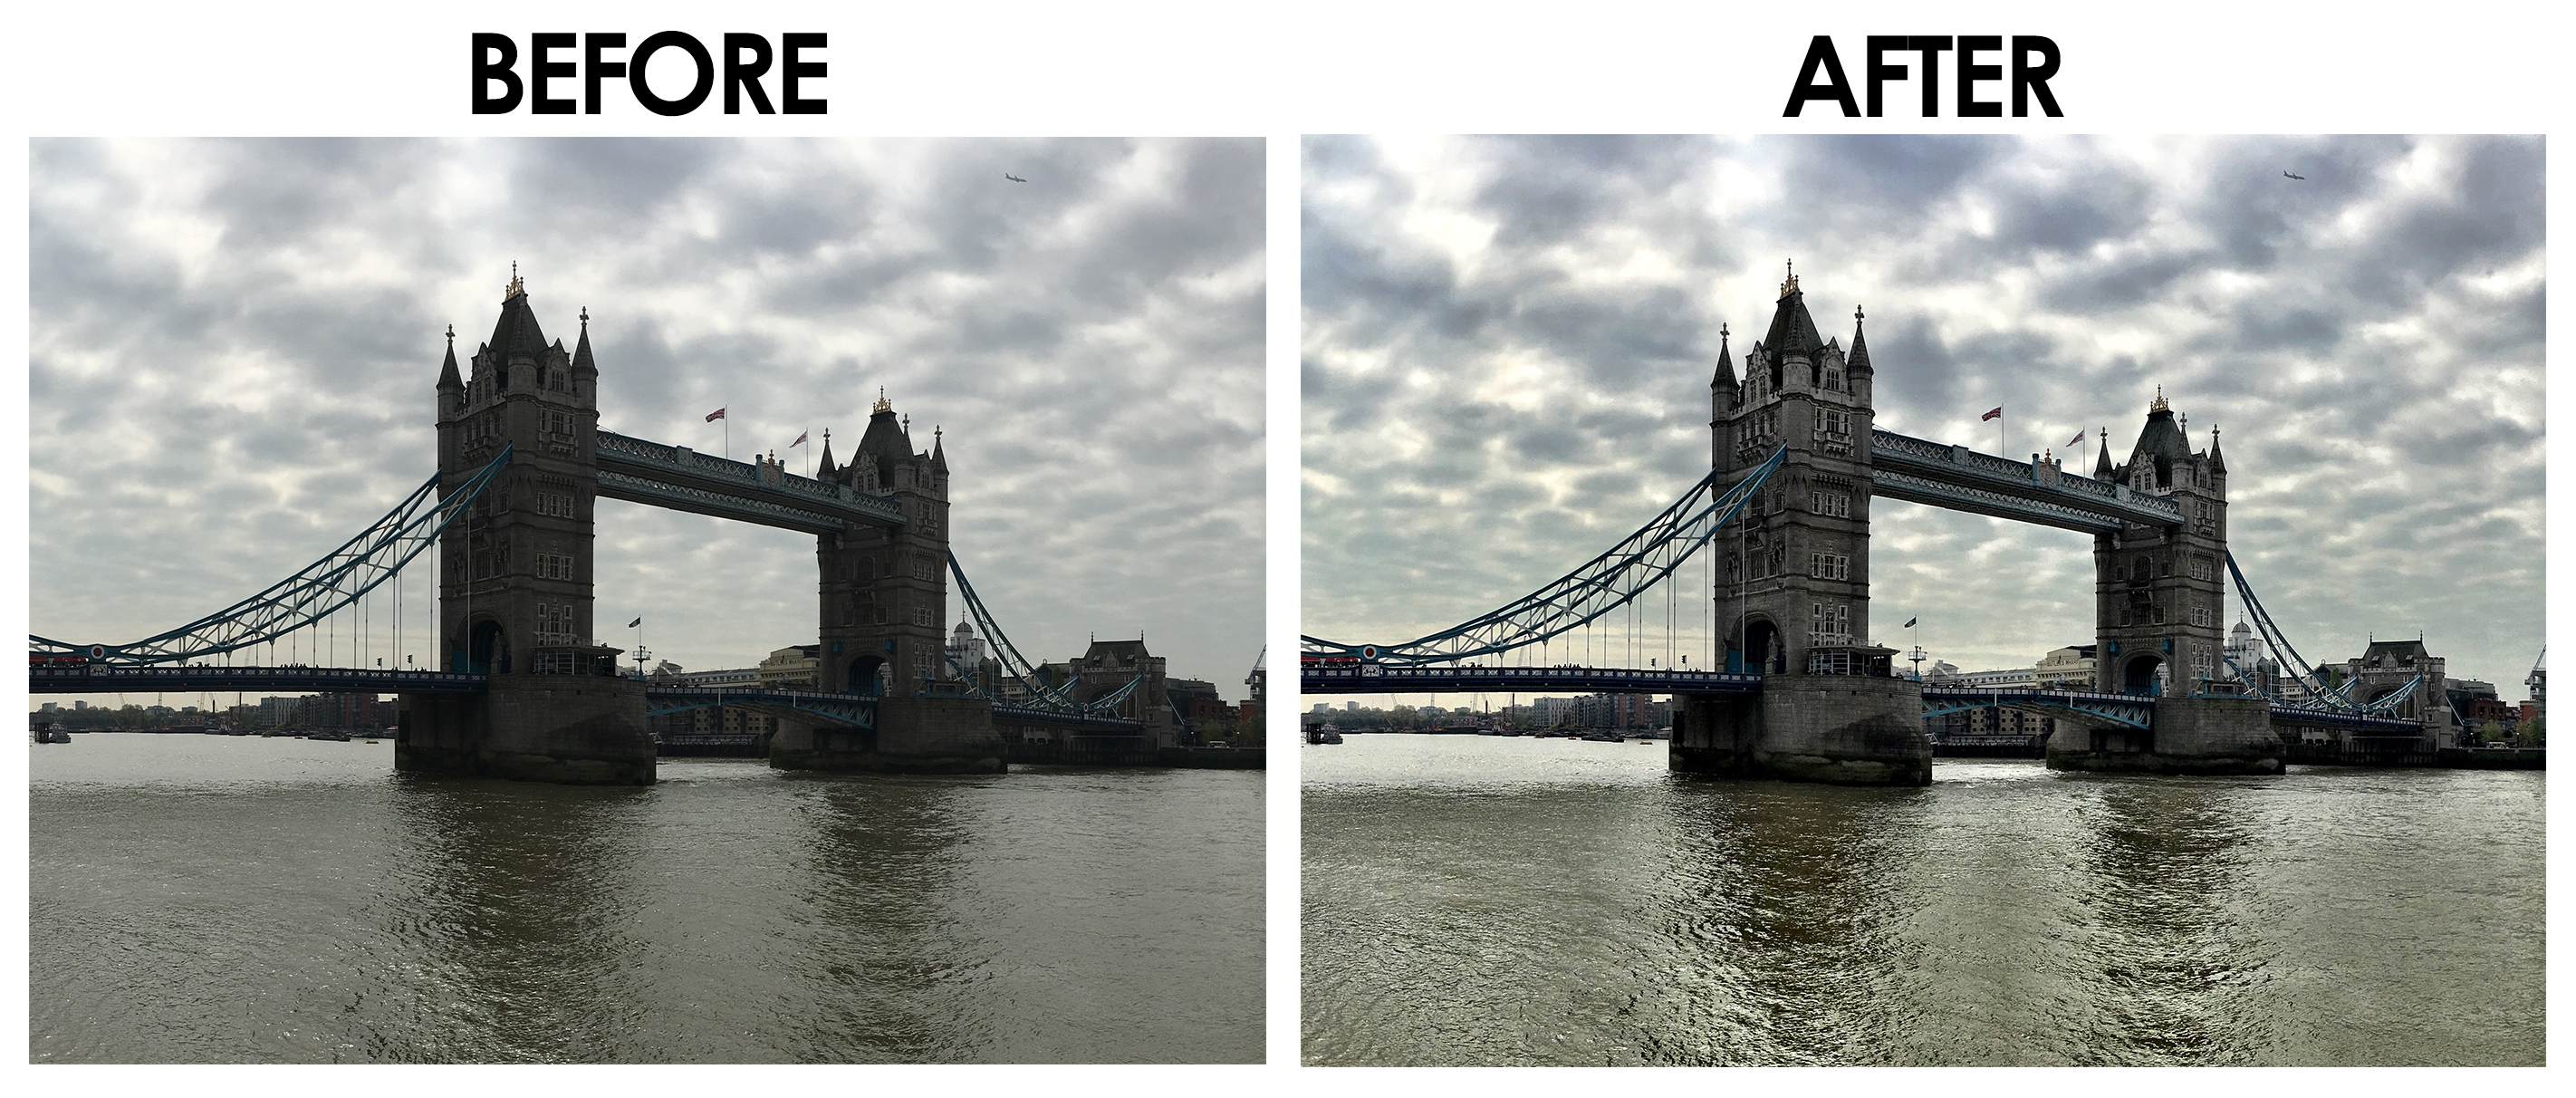 Tower Bridge Before and After - Camera+ Photo App